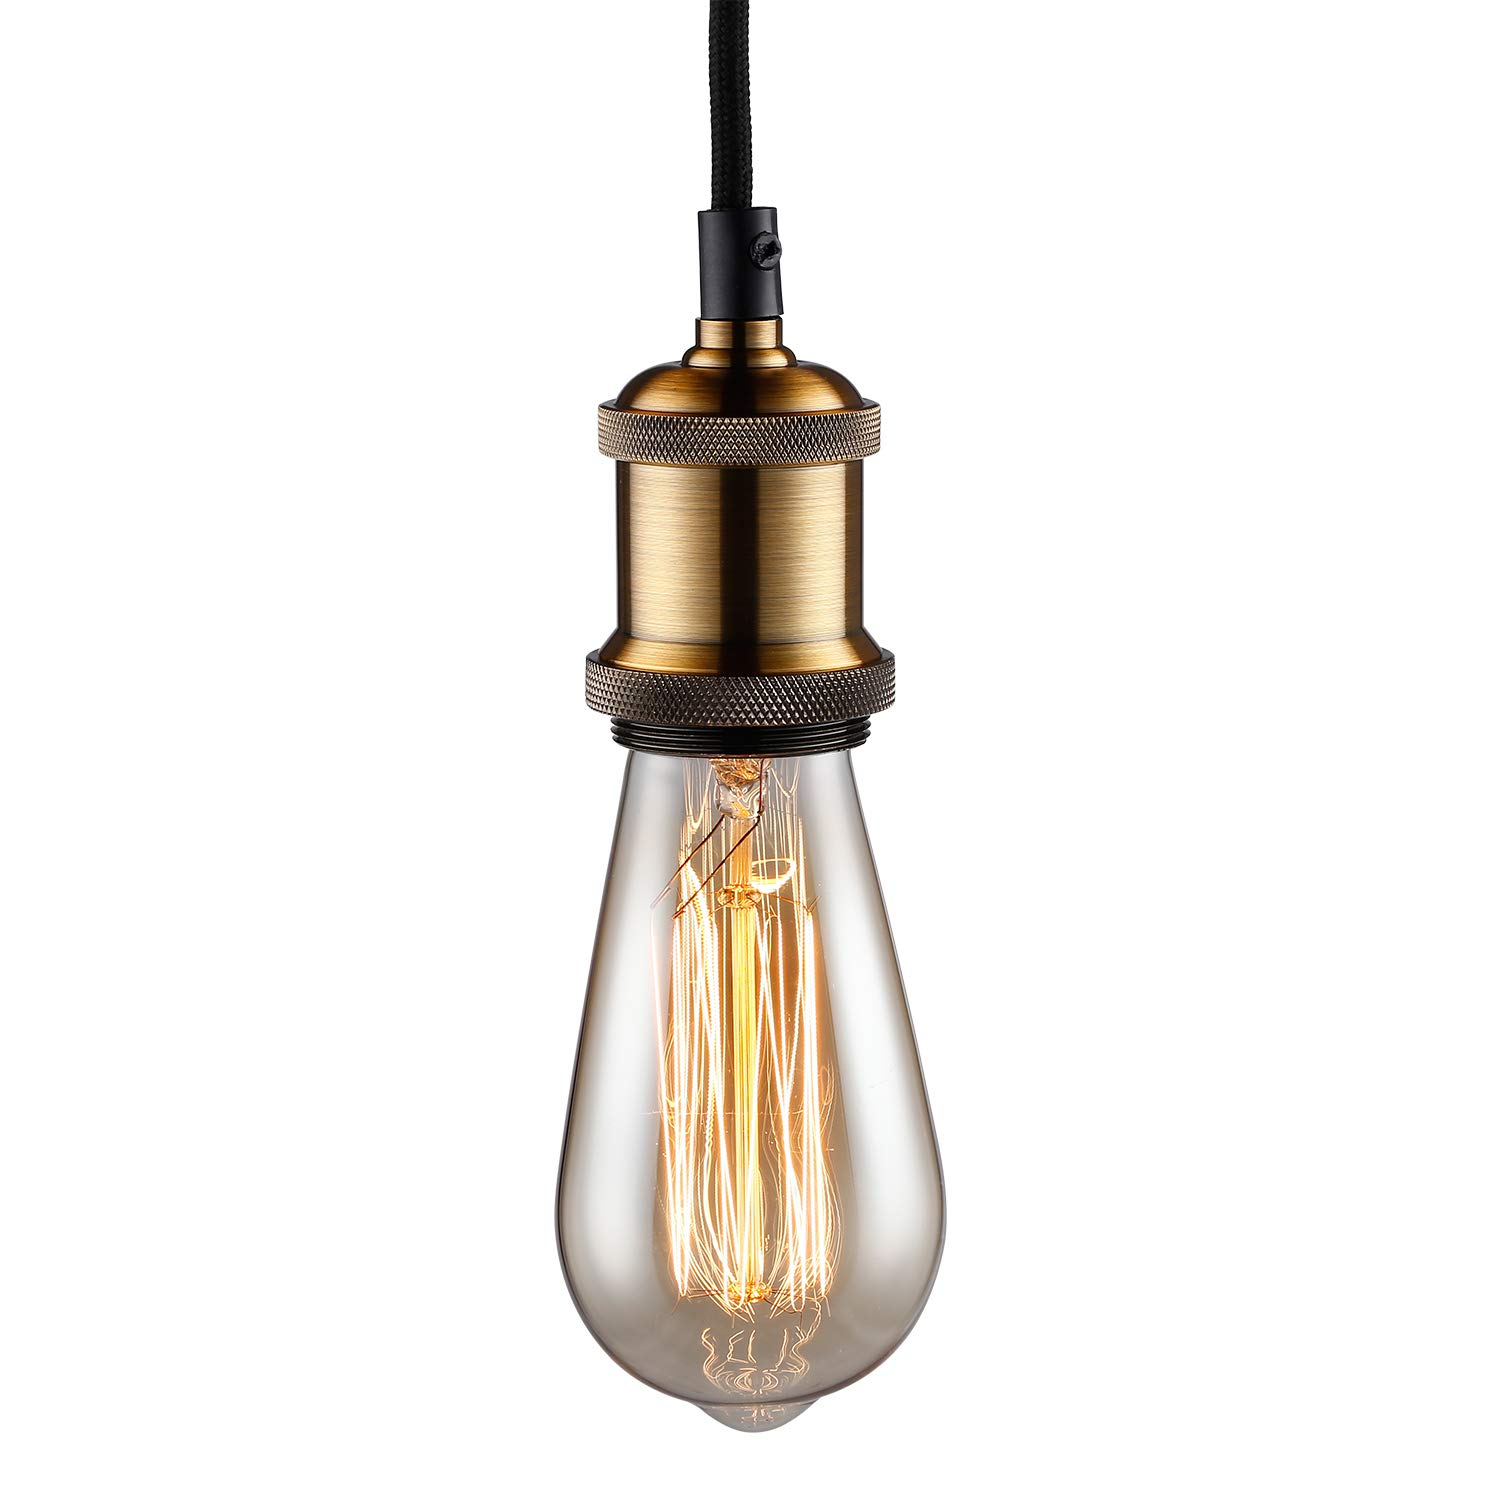 TORCHSTAR Pendant Light Fixture, 3.28ft Adjustable Lamp Cord, UL-Listed Power Cord, Decorating for Living Room, Coffee Shop, Western Stylish Place, 2-Year Warranty, Bronze